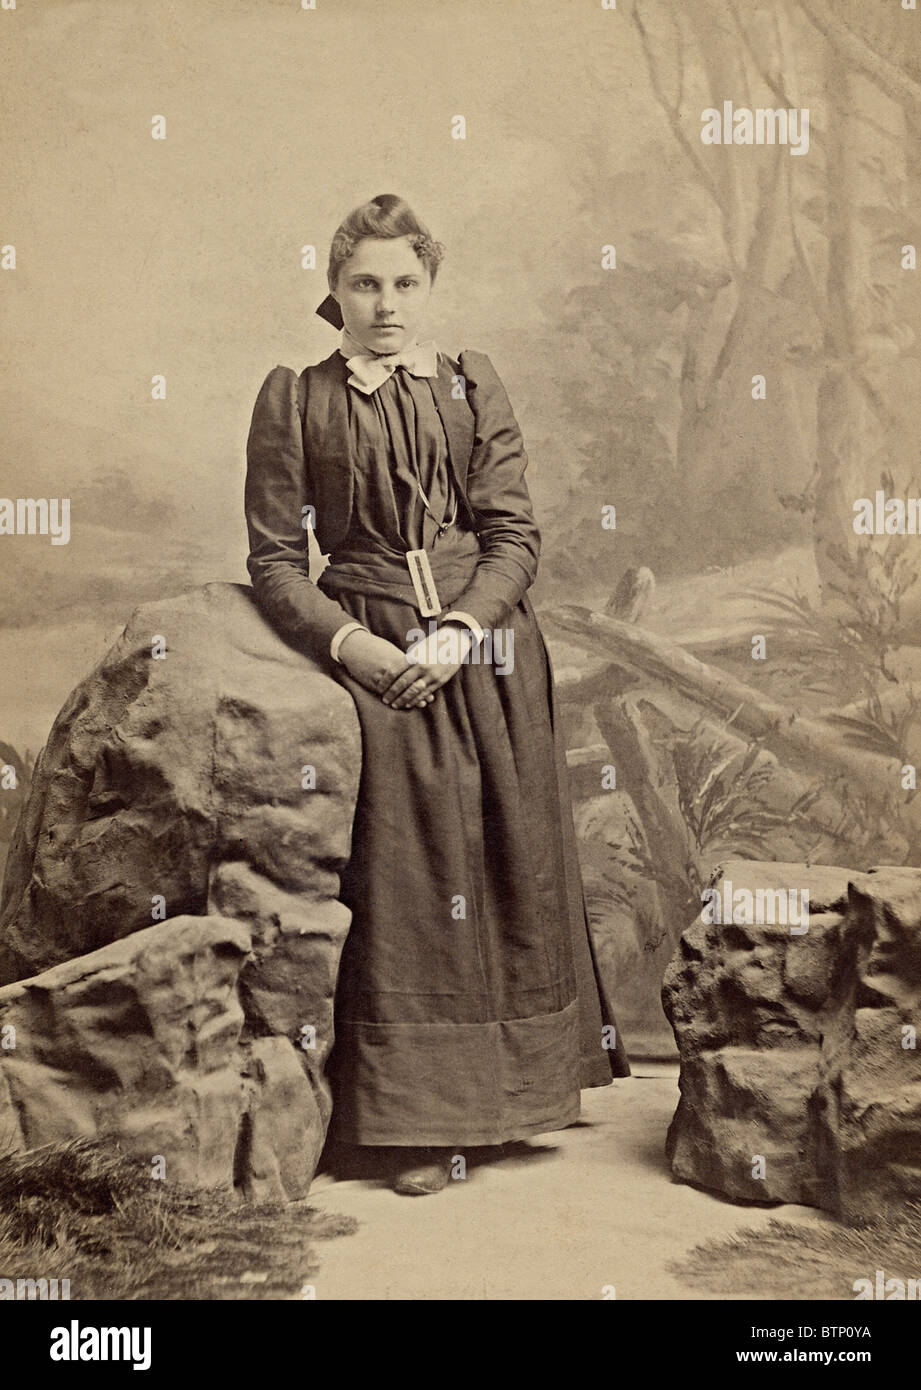 f1aa1dd89 Vintage 1890's portrait photo of a young girl dressed in period ...